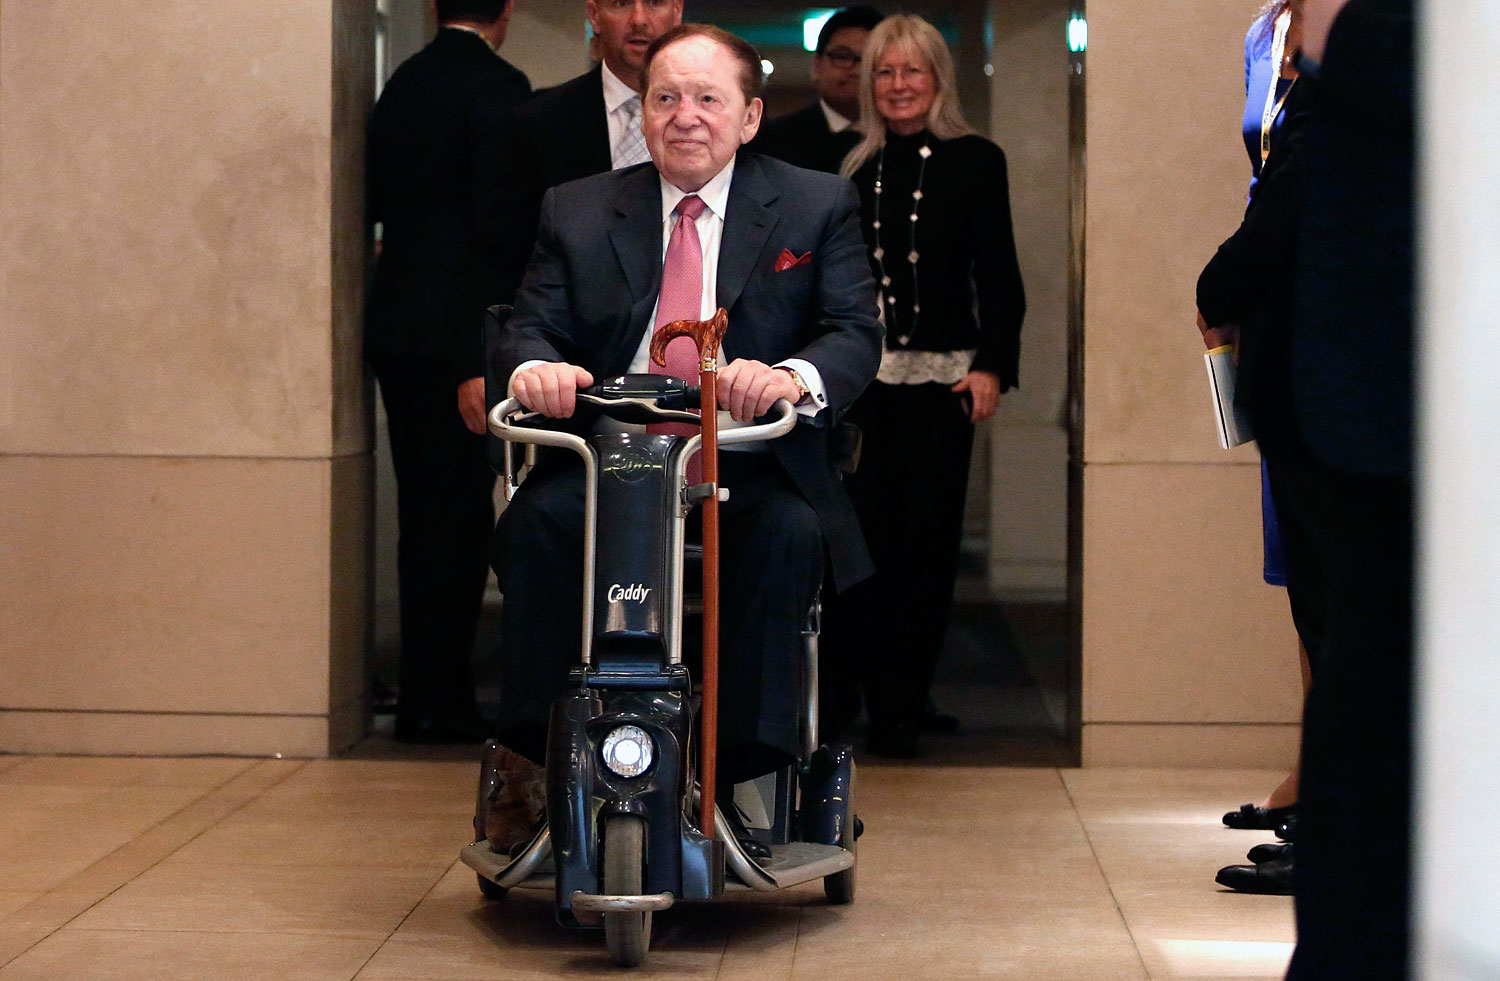 Las Vegas Sands Corp Chairman and Chief Executive Officer Sheldon Adelson rides his wheelchair after a news conference in Tokyo , Feb. 24, 2014